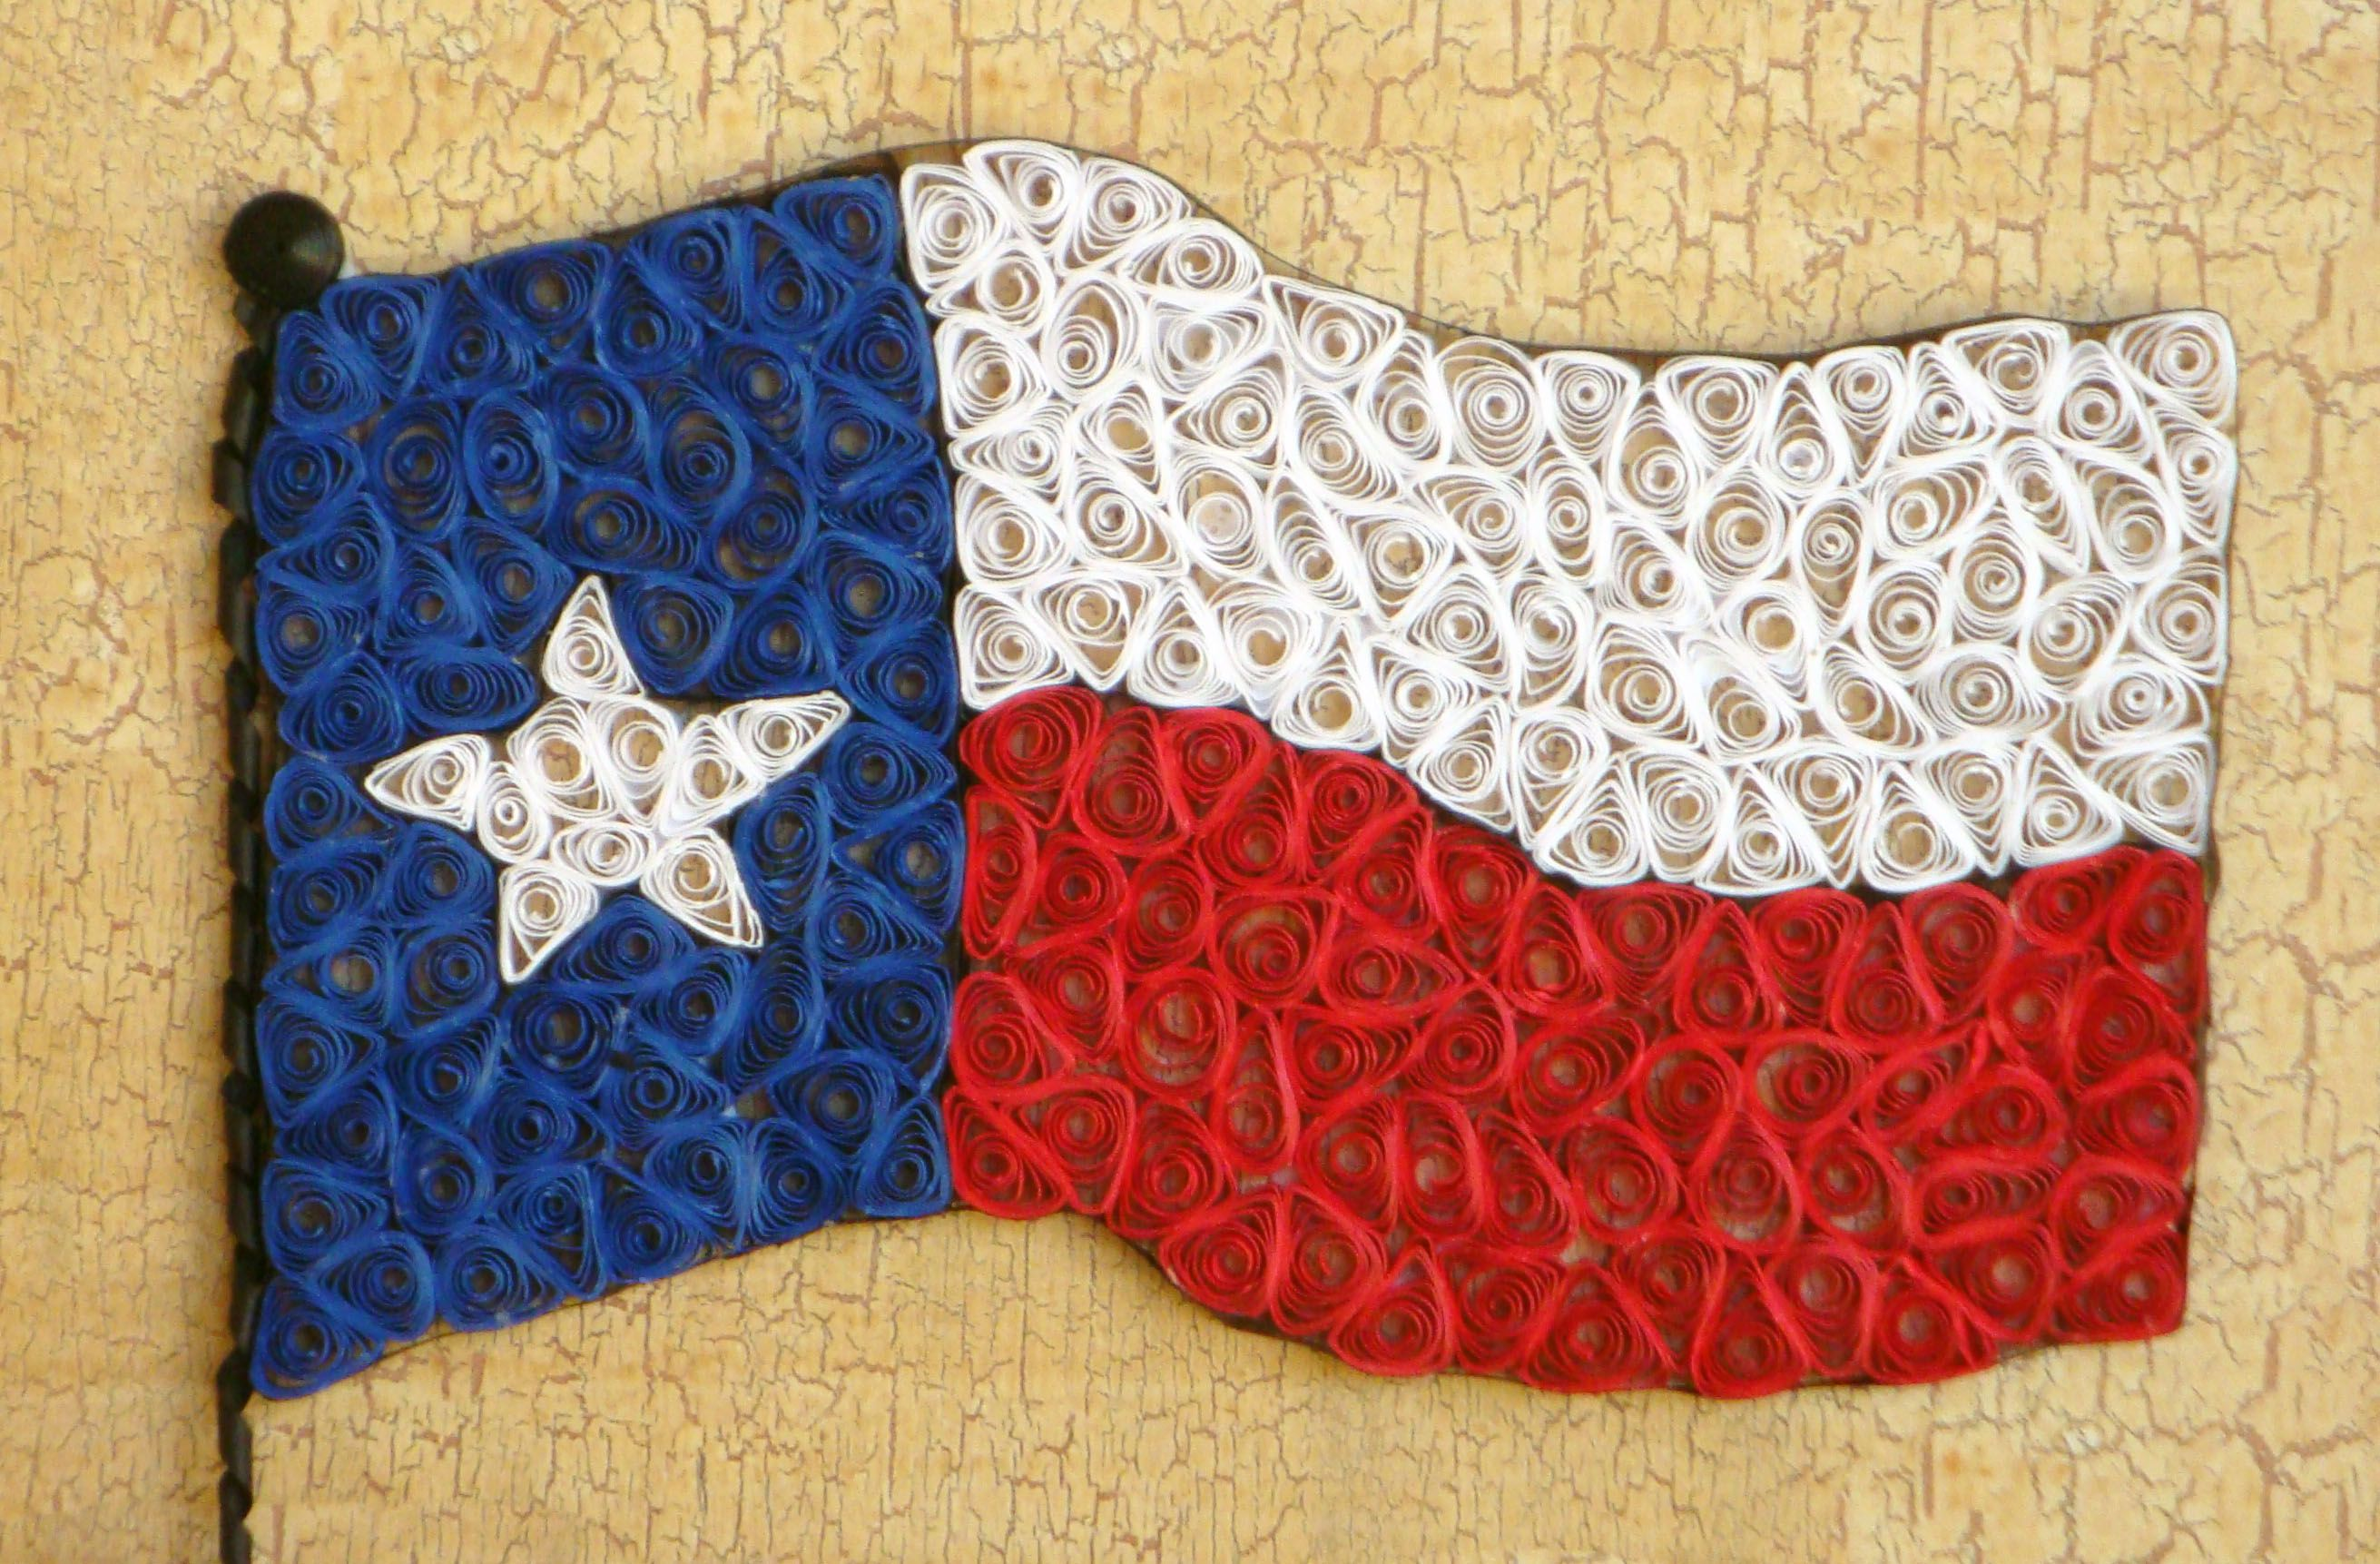 Texas Flag Paper Quilling Patterns Paper Quilling Quilling Designs